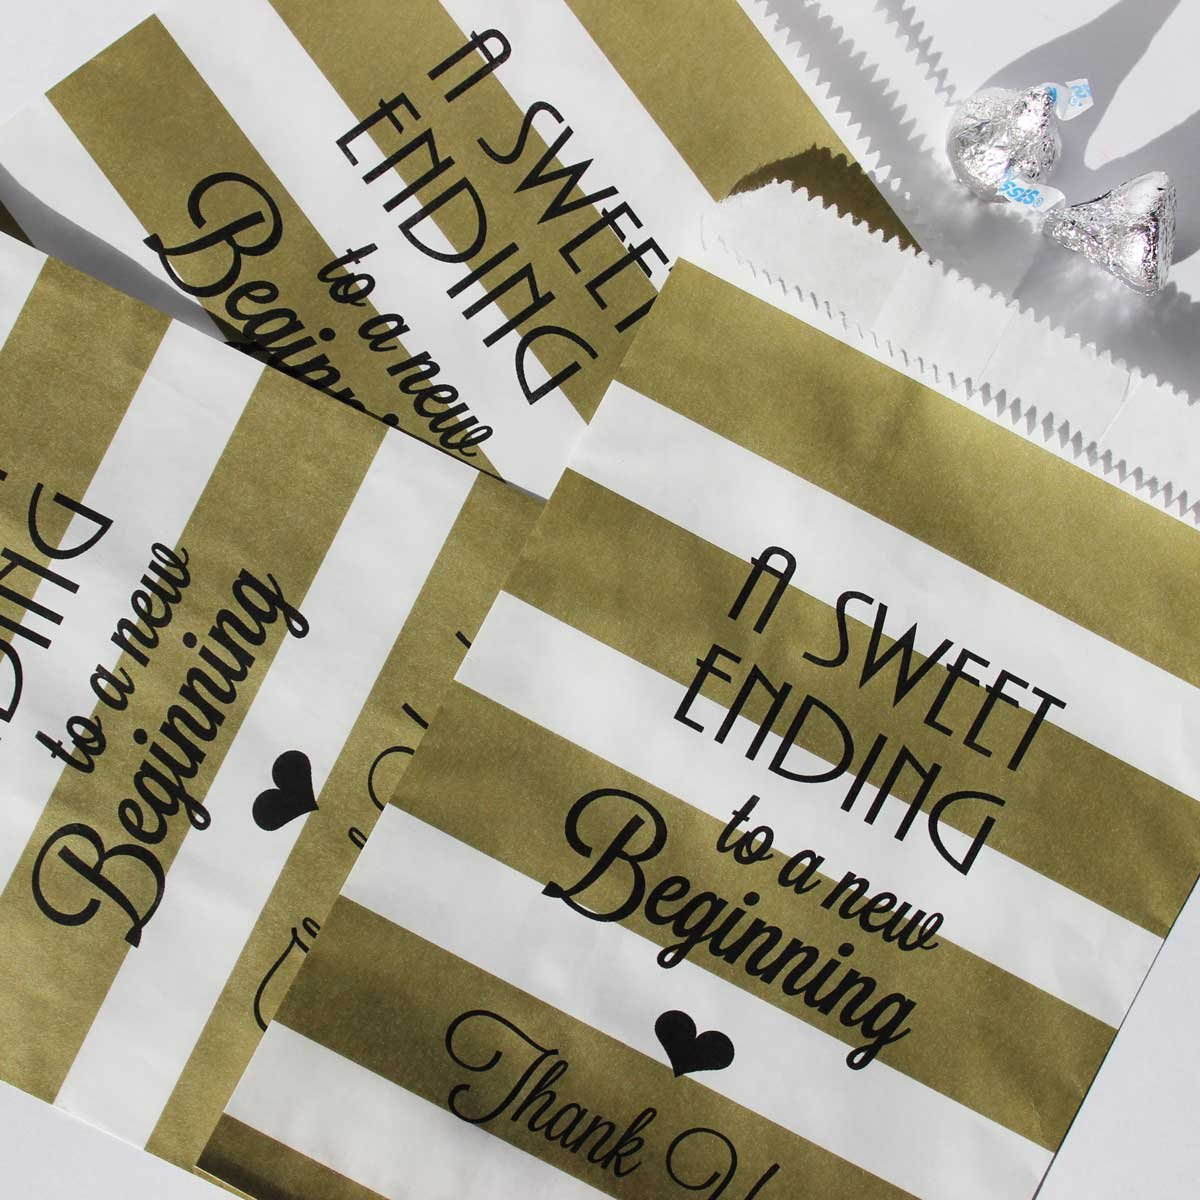 Set of 48 Bags and 48 Stickers A Sweet Ending to a New Beginning Gold and White Stripe Candy Bags Bakers Bling Wedding Party Favor Bags with Stickers 5.5 x 7.5